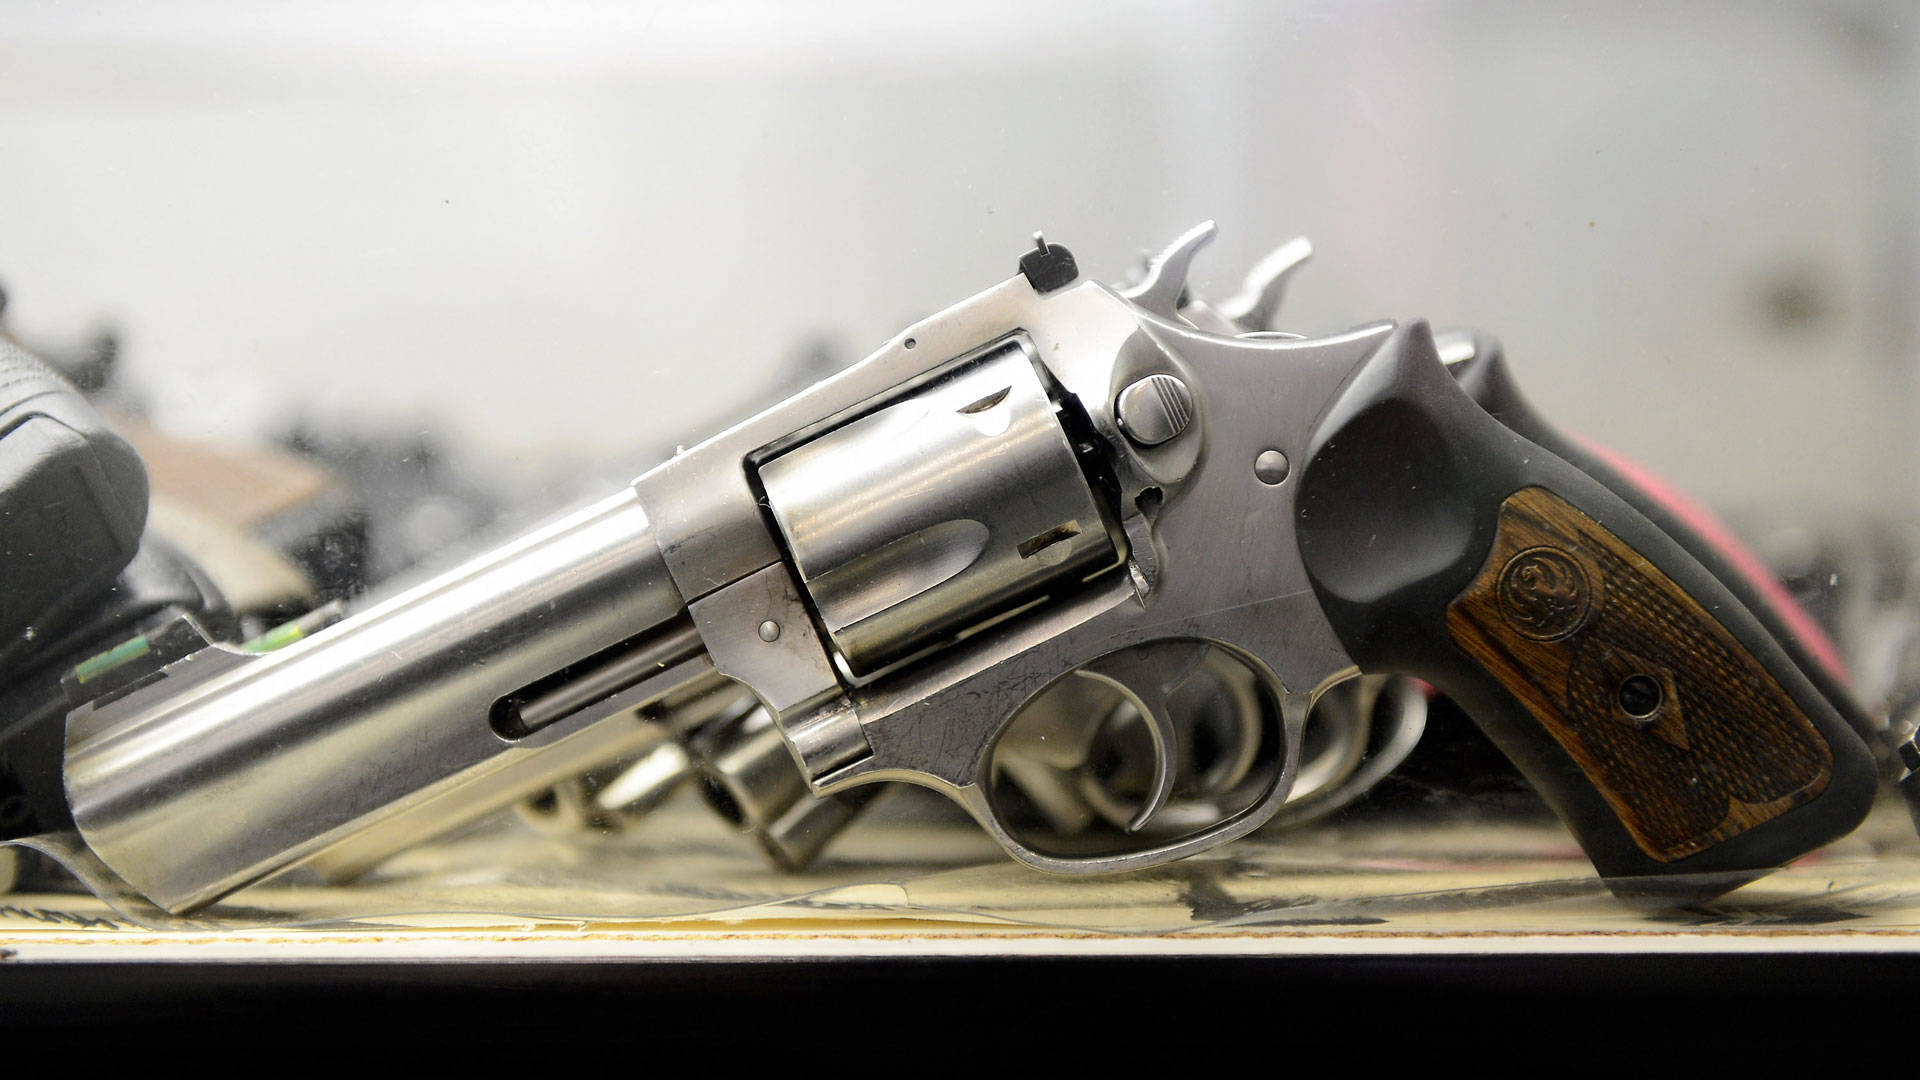 A .357 Magnum revolver on display at the Los Angeles Gun Club. Kevork Djansezian/Getty Images